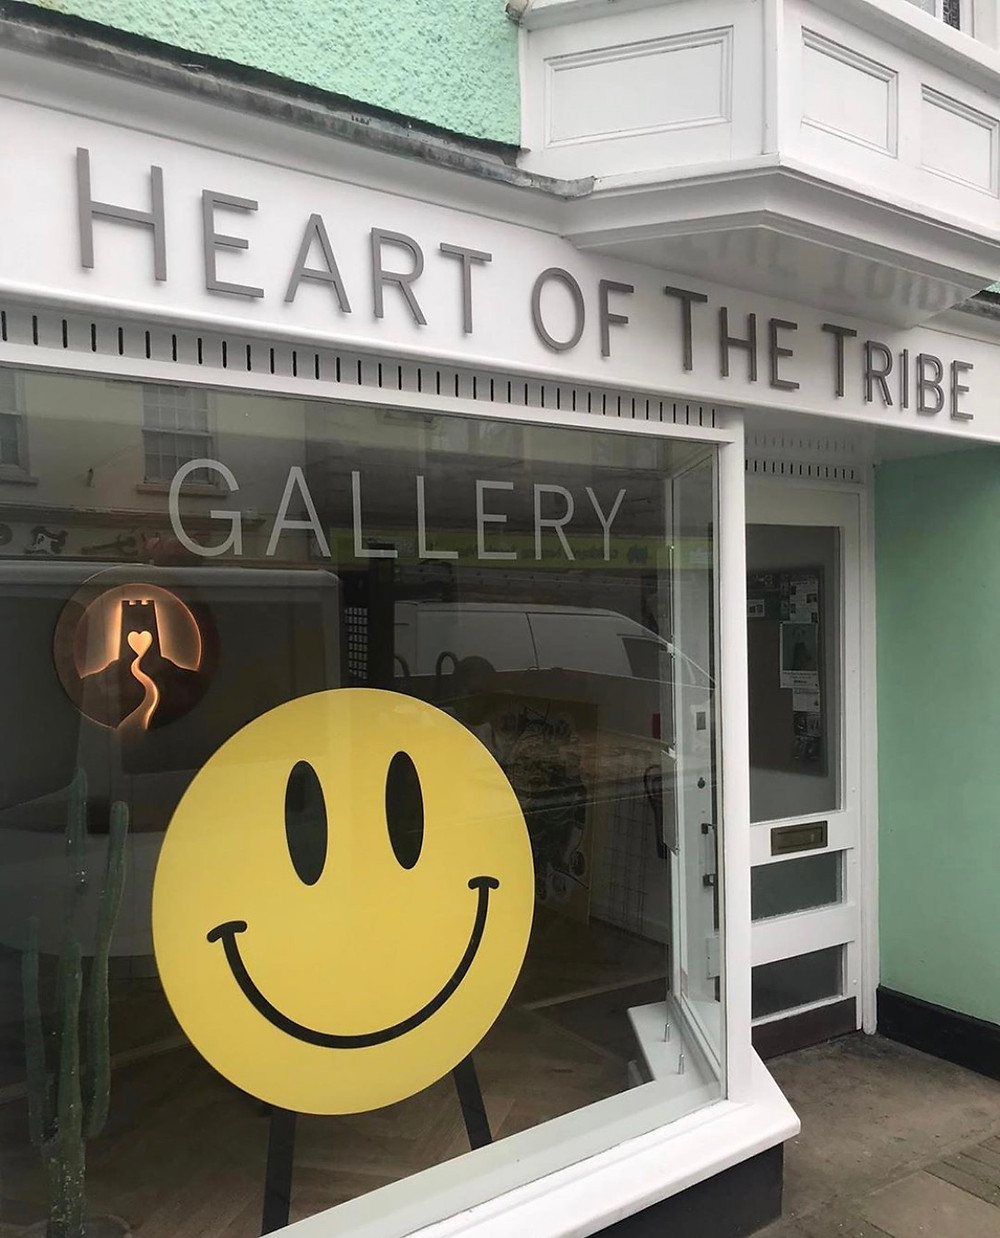 Somerset cool, Somerset blog, Heart of the tribe, art in Somerset, positive news in Somerset